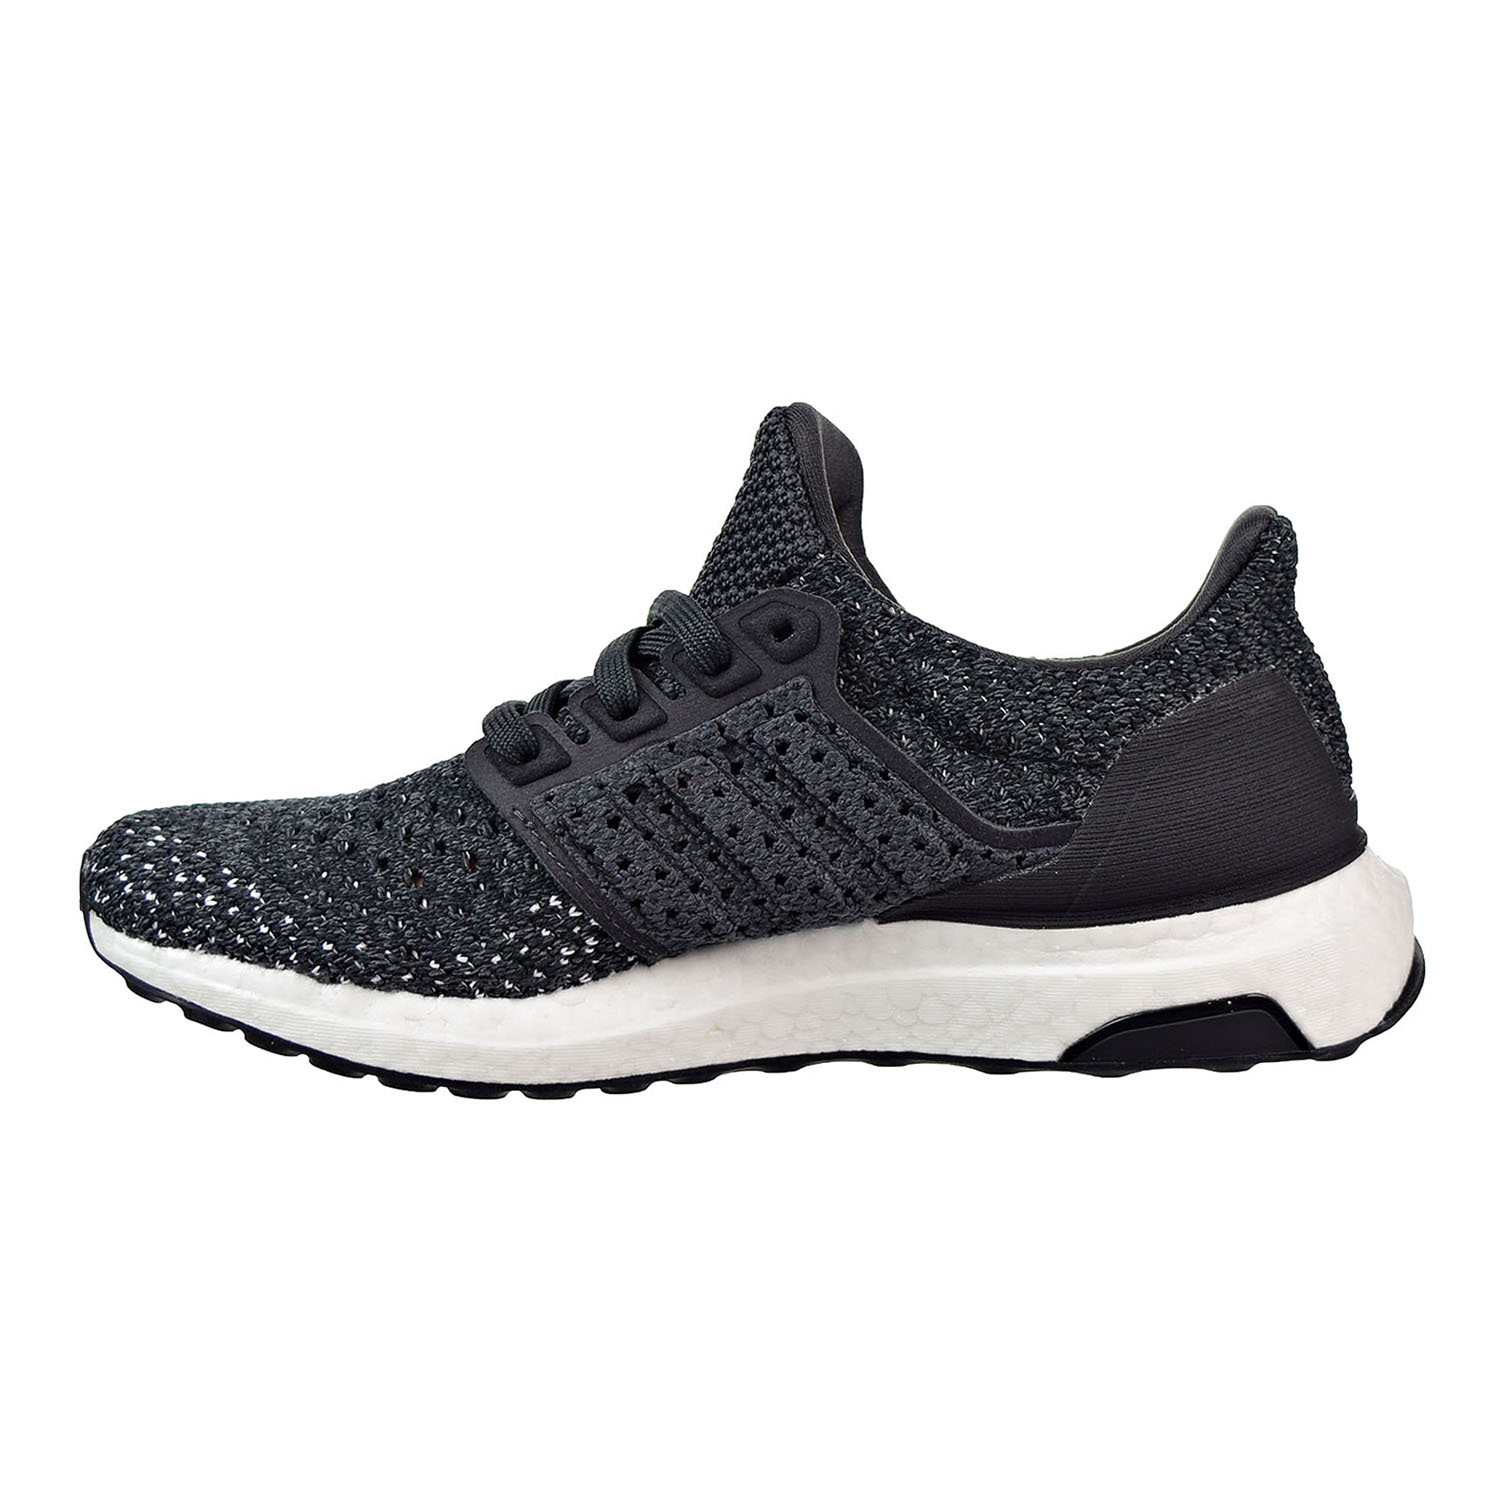 9373c4ad72d19 Adidas UltraBoost Clima Big Kids  Running Shoes Carbon Carbon Orchid Tint  db1426